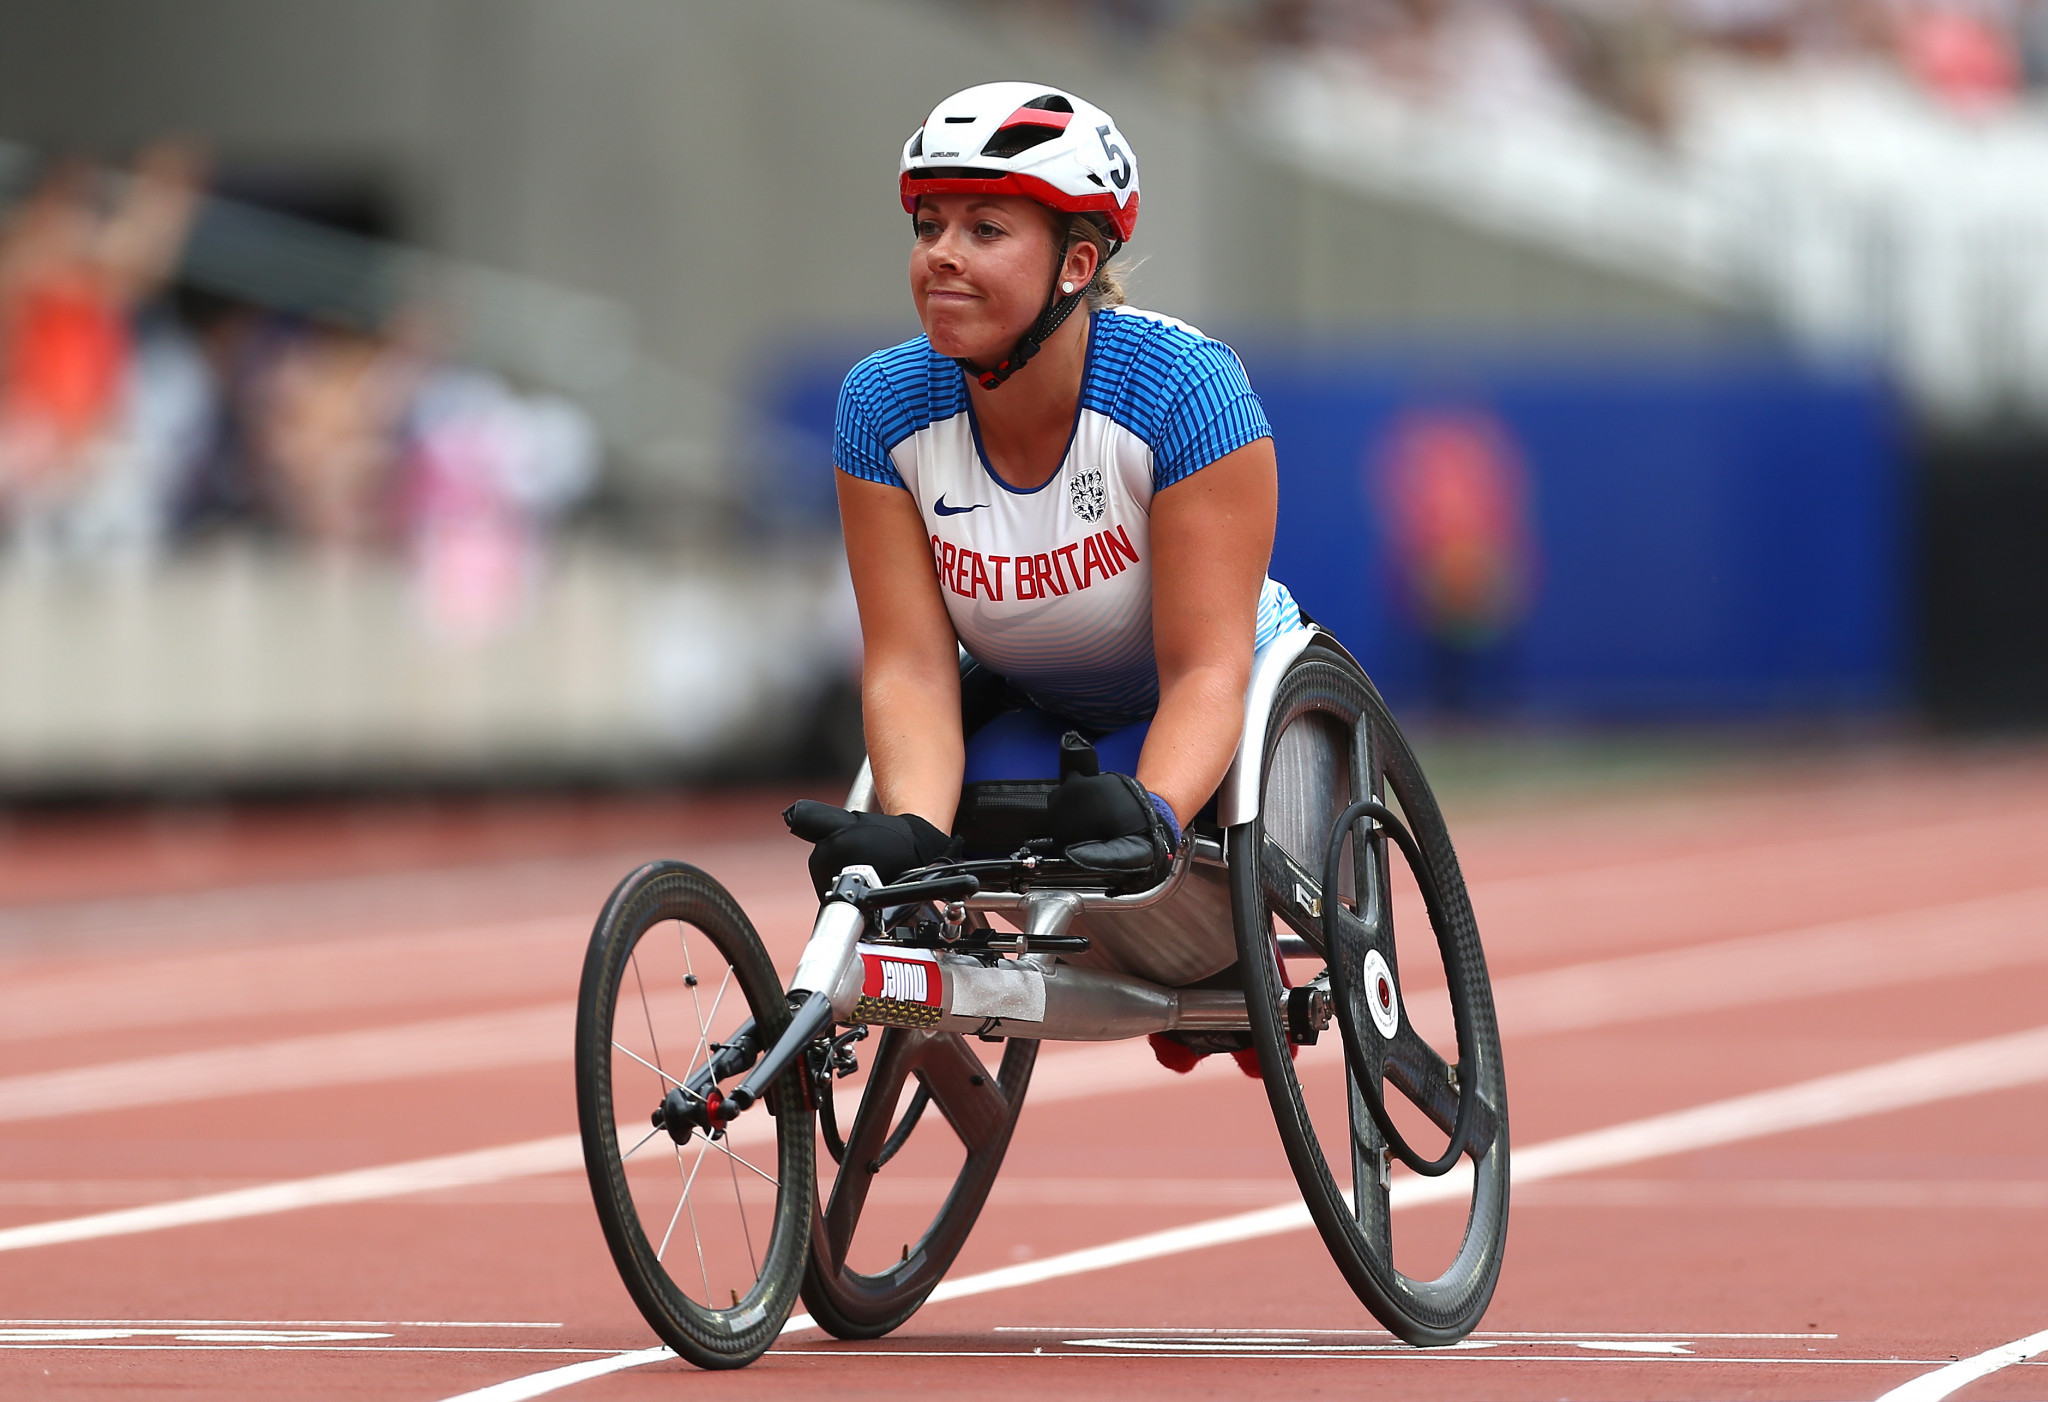 Britain names 11 defending champions in squad for 2019 World Para Athletics Championships